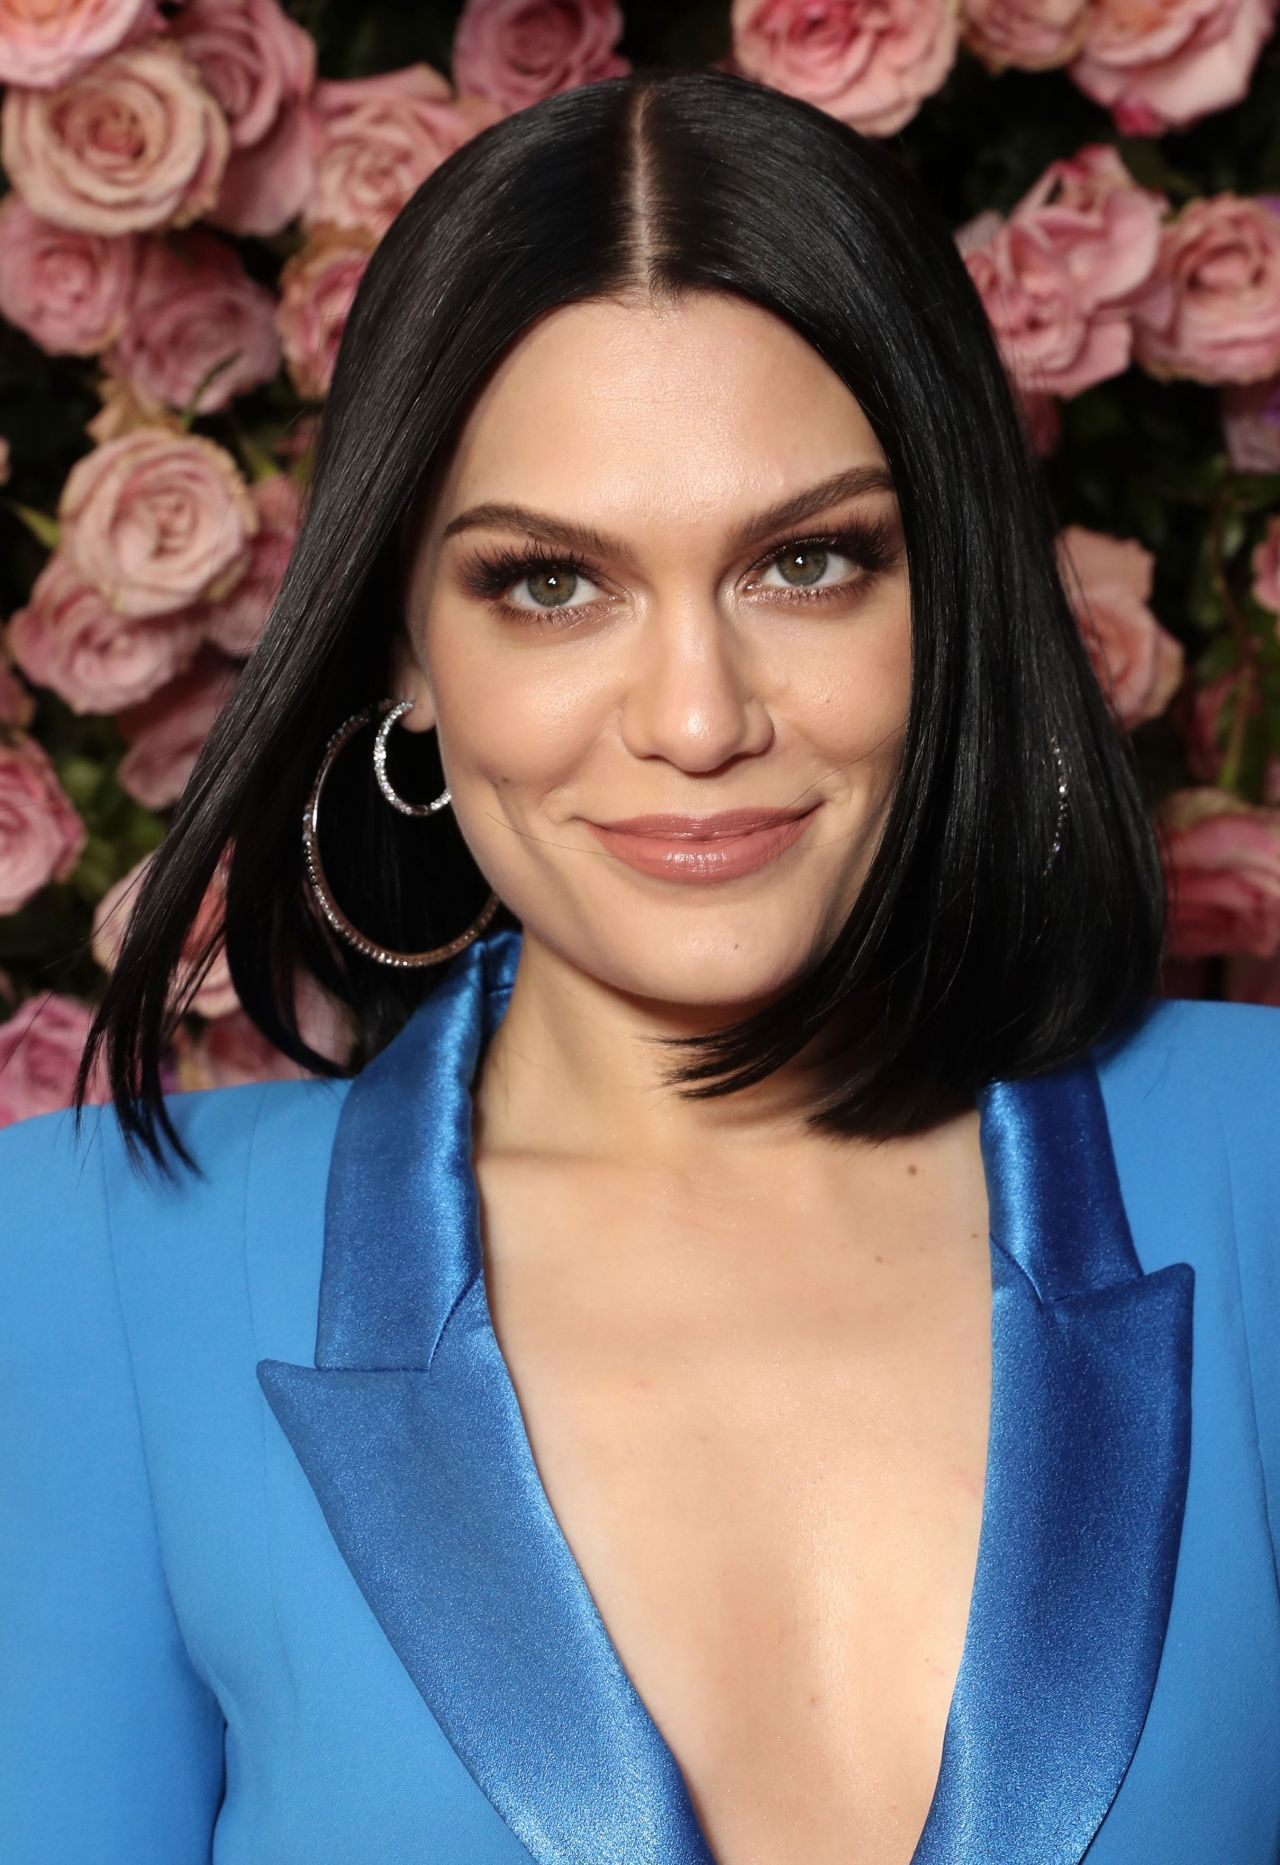 jessie j quotdear mama an event to honor momsquot in la 05032018